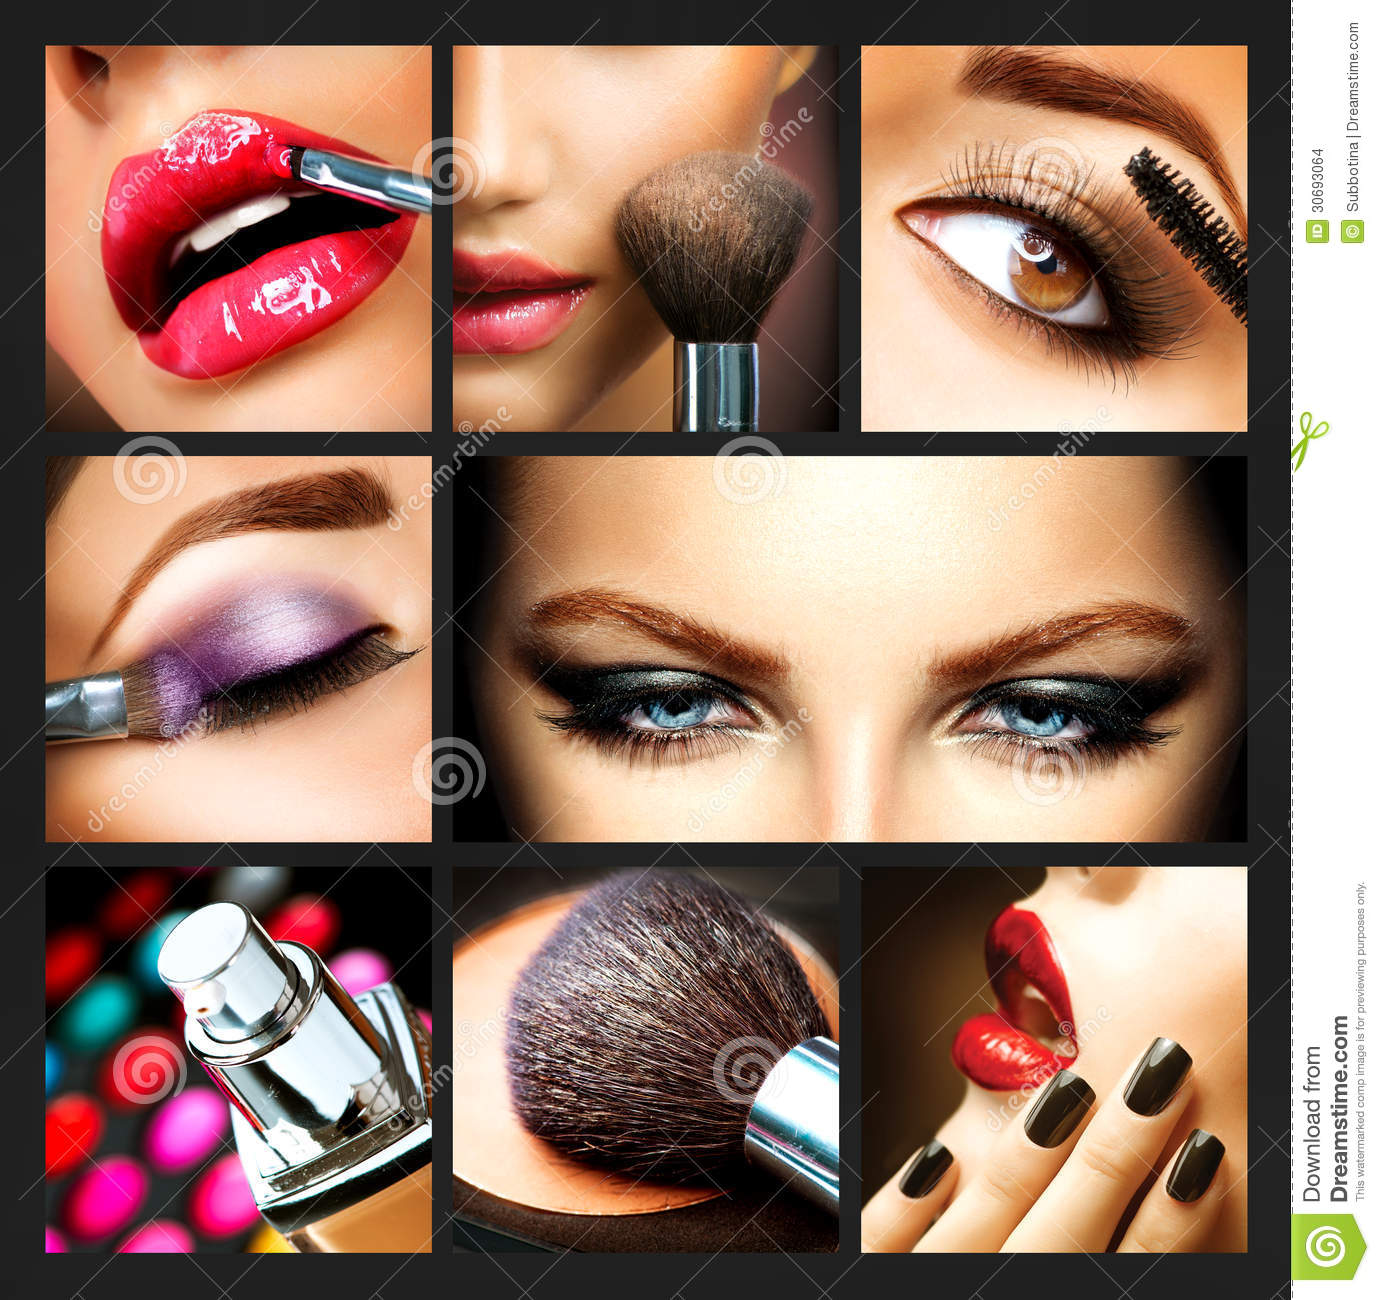 Makeup collage backgrounds